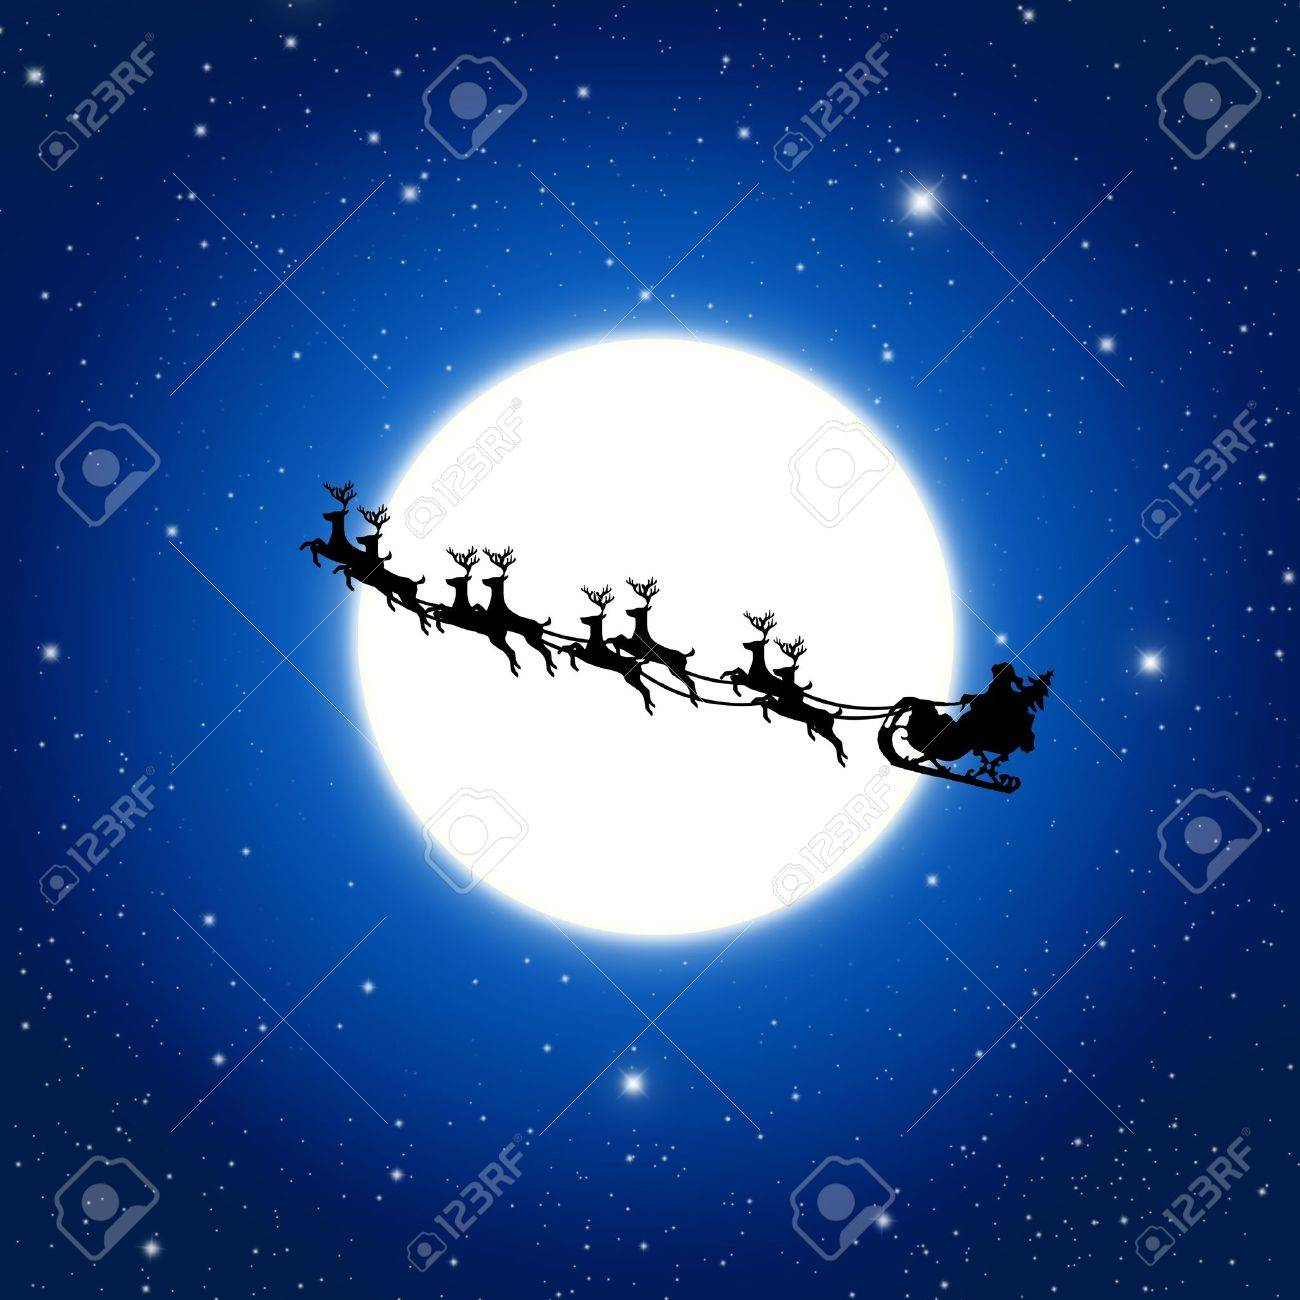 Santa Claus On Sledge With Deer And white Moon, Illustration Stock Illustration - 10196668